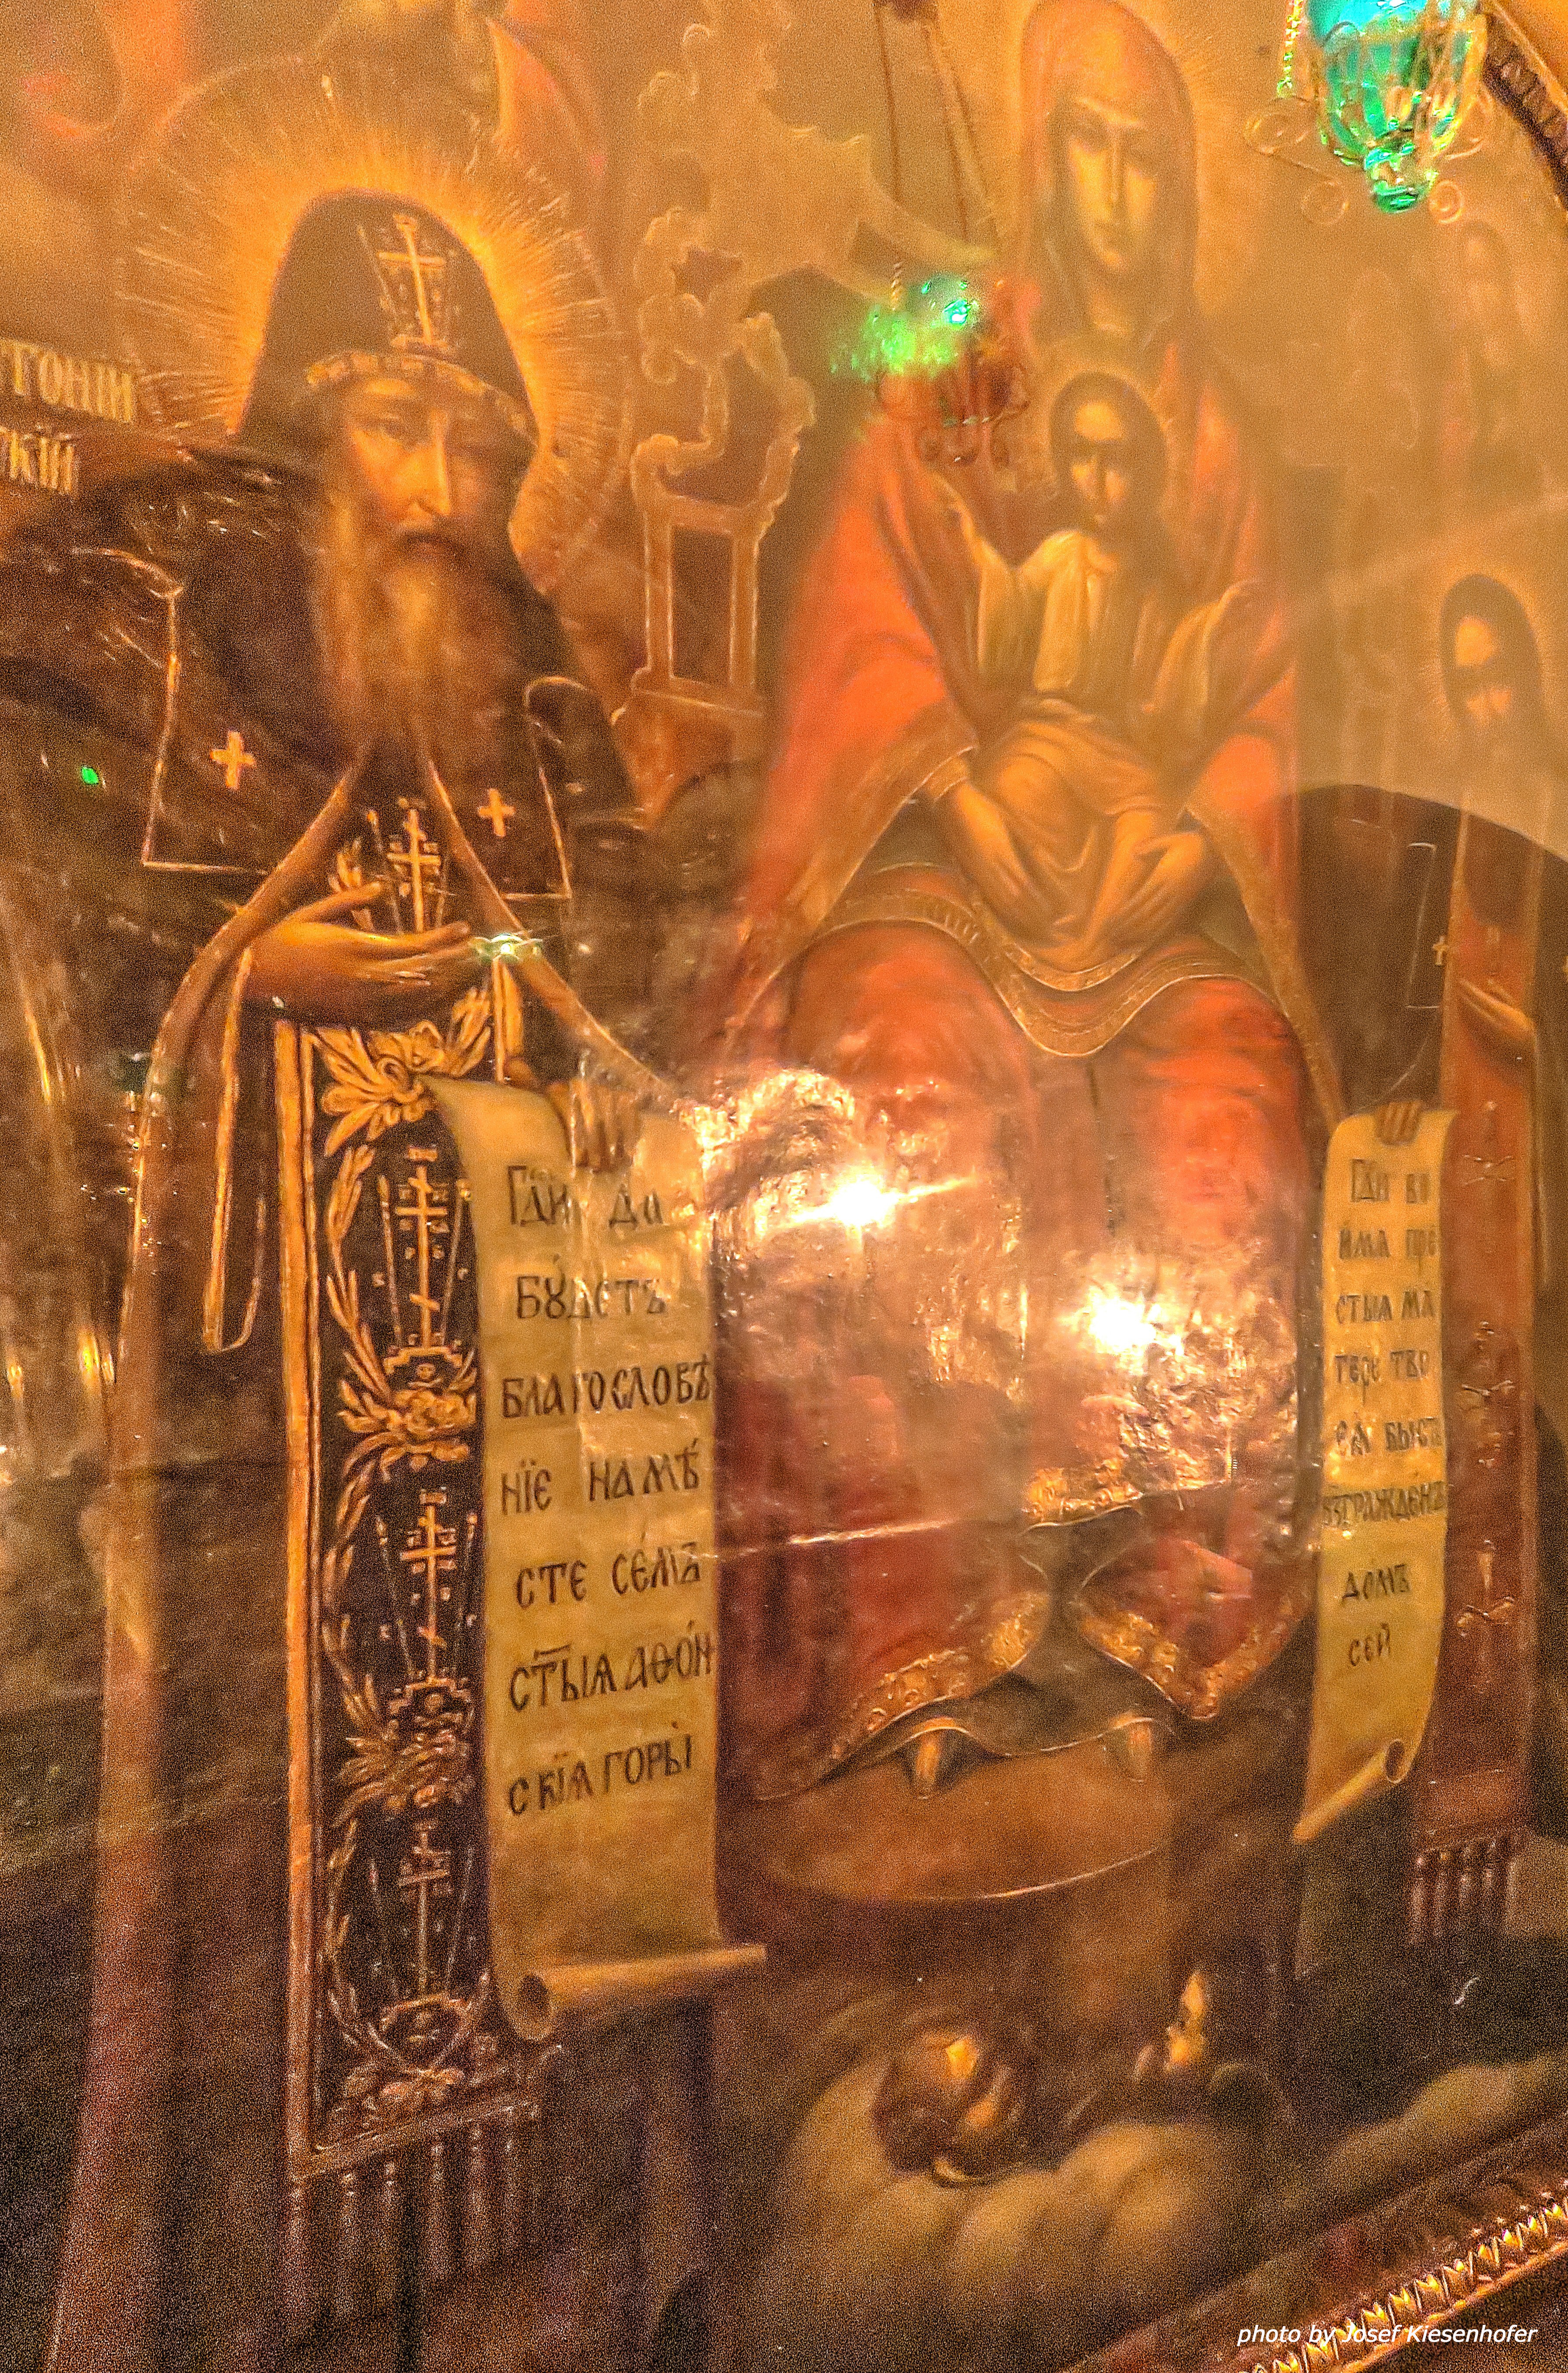 St. Antoniy and St, Feodosiy are founders of Lavra cave monastery. Icon in Far caves.